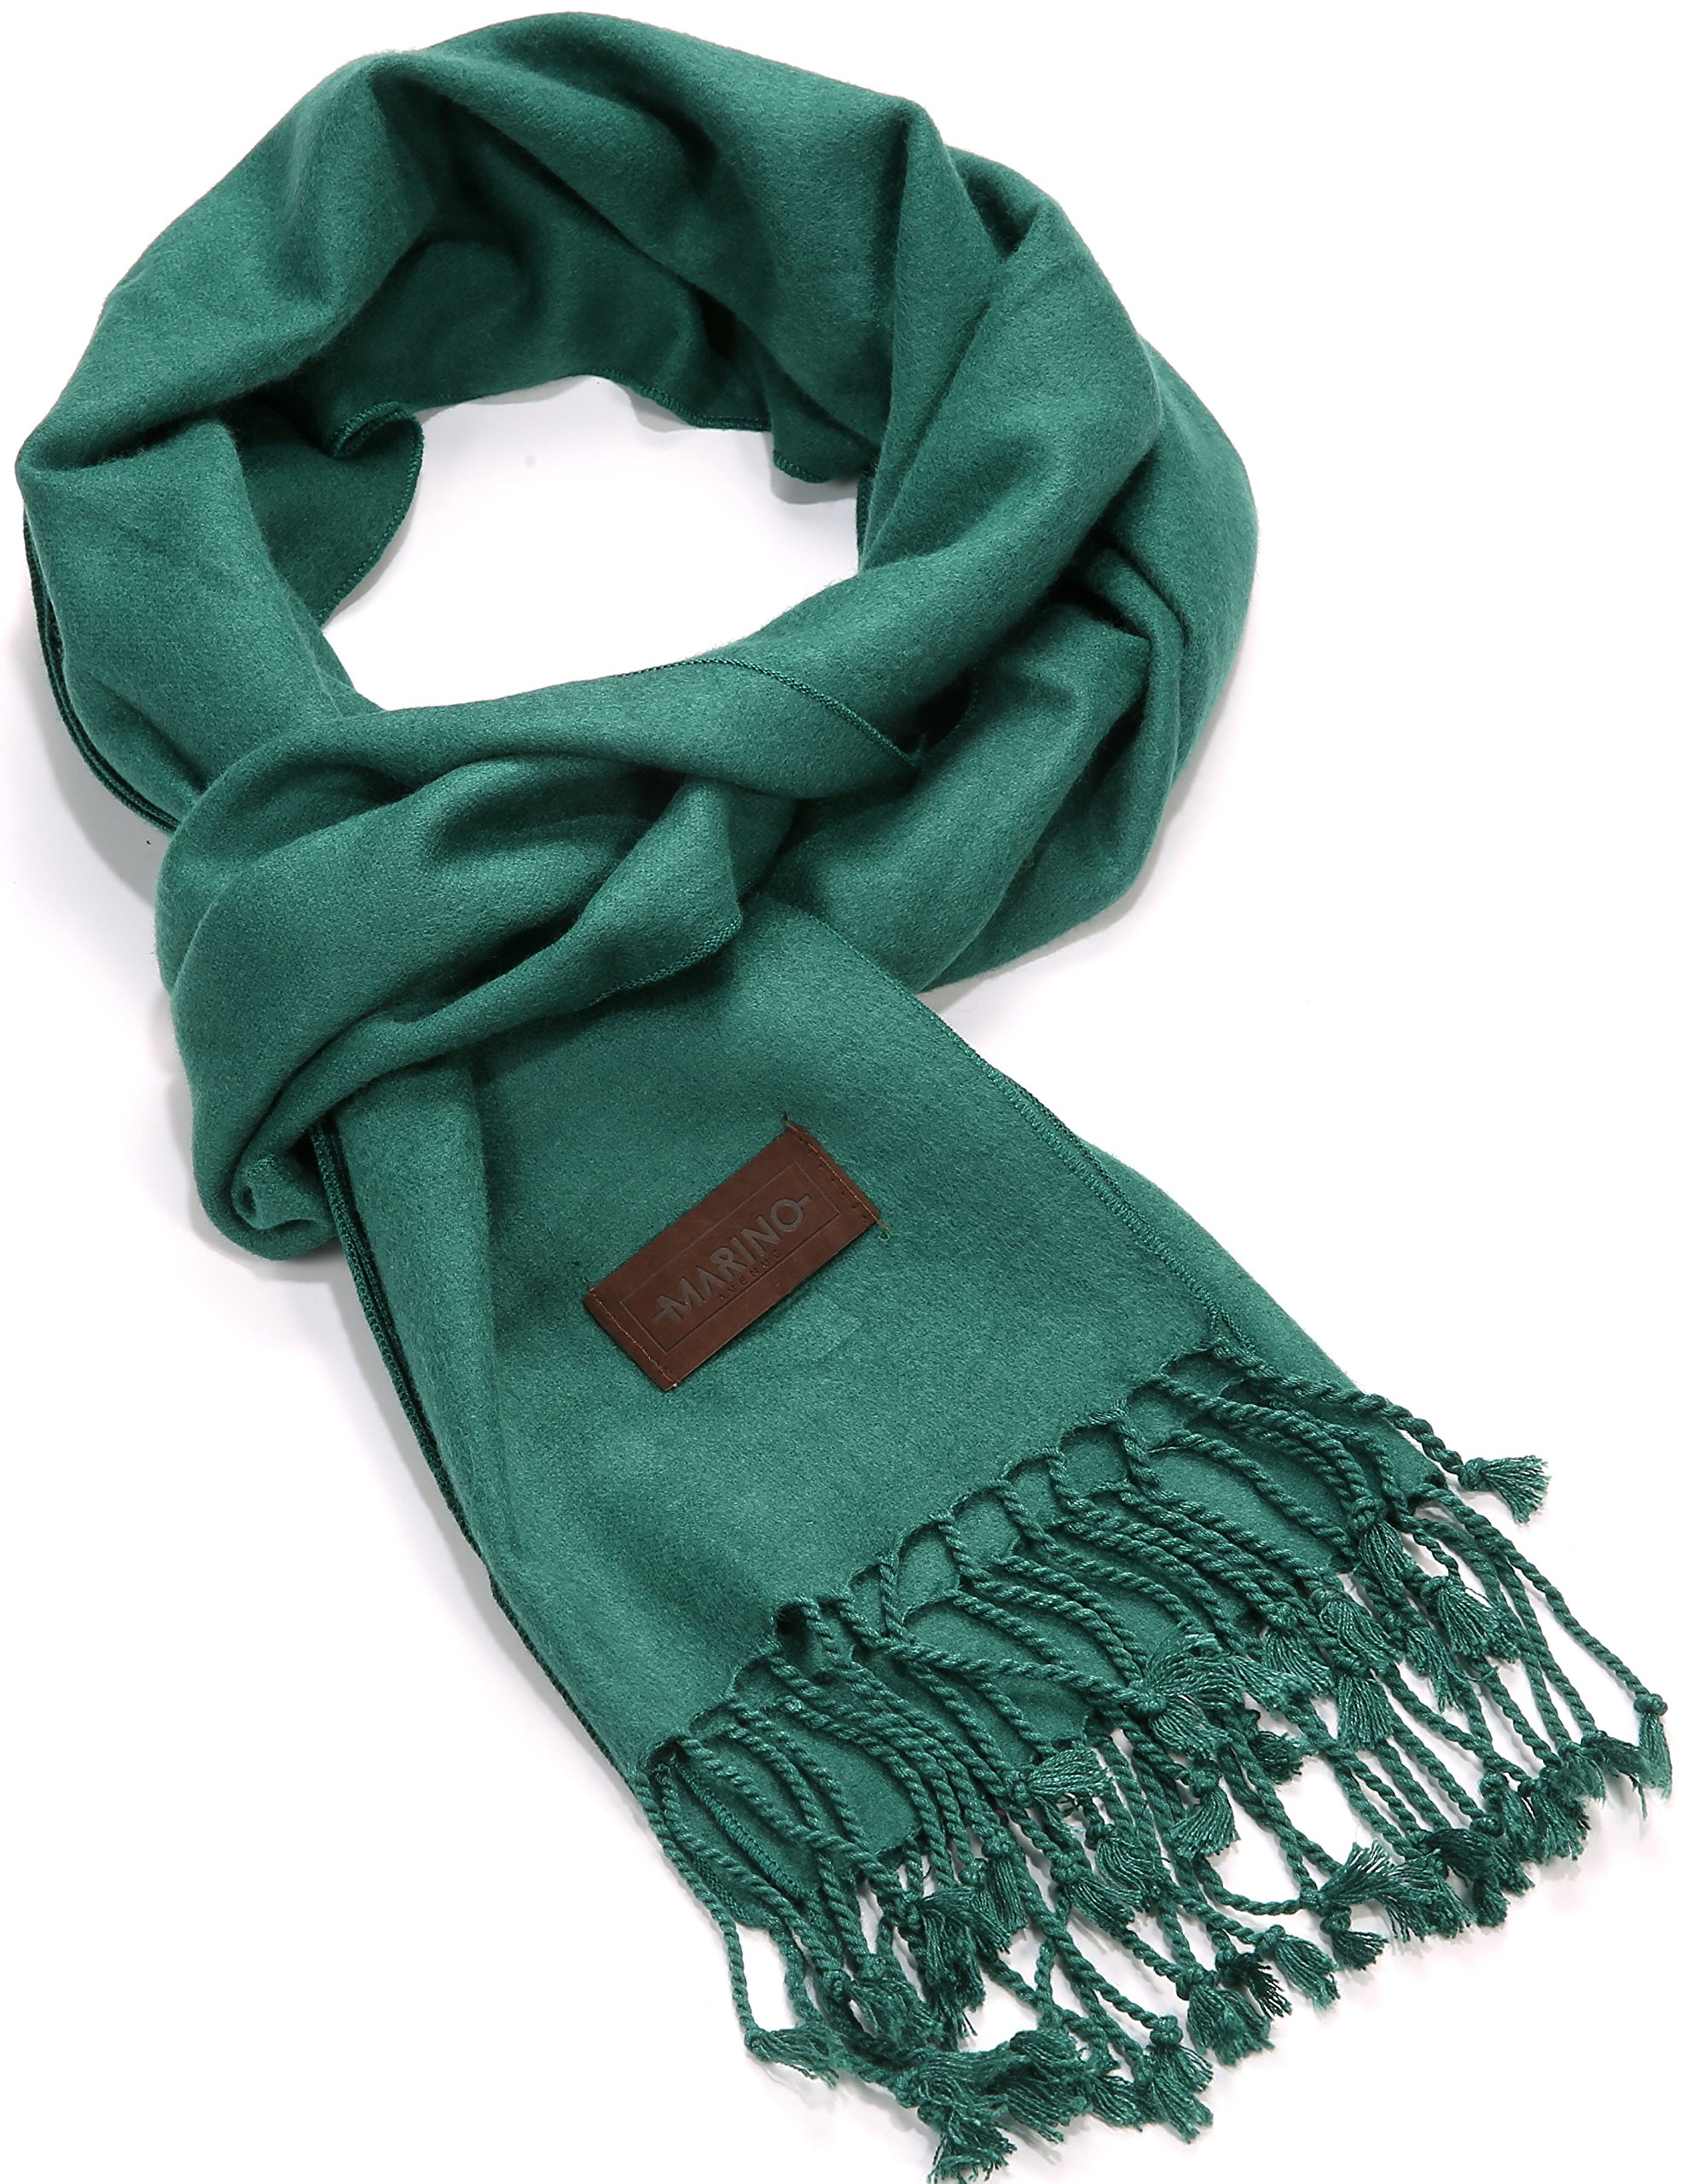 Marino's Winter Cashmere Feel Unisex Men And Women Scarf, 100% Cotton Fashion Scarves, In Elegant Gift Box - Teal